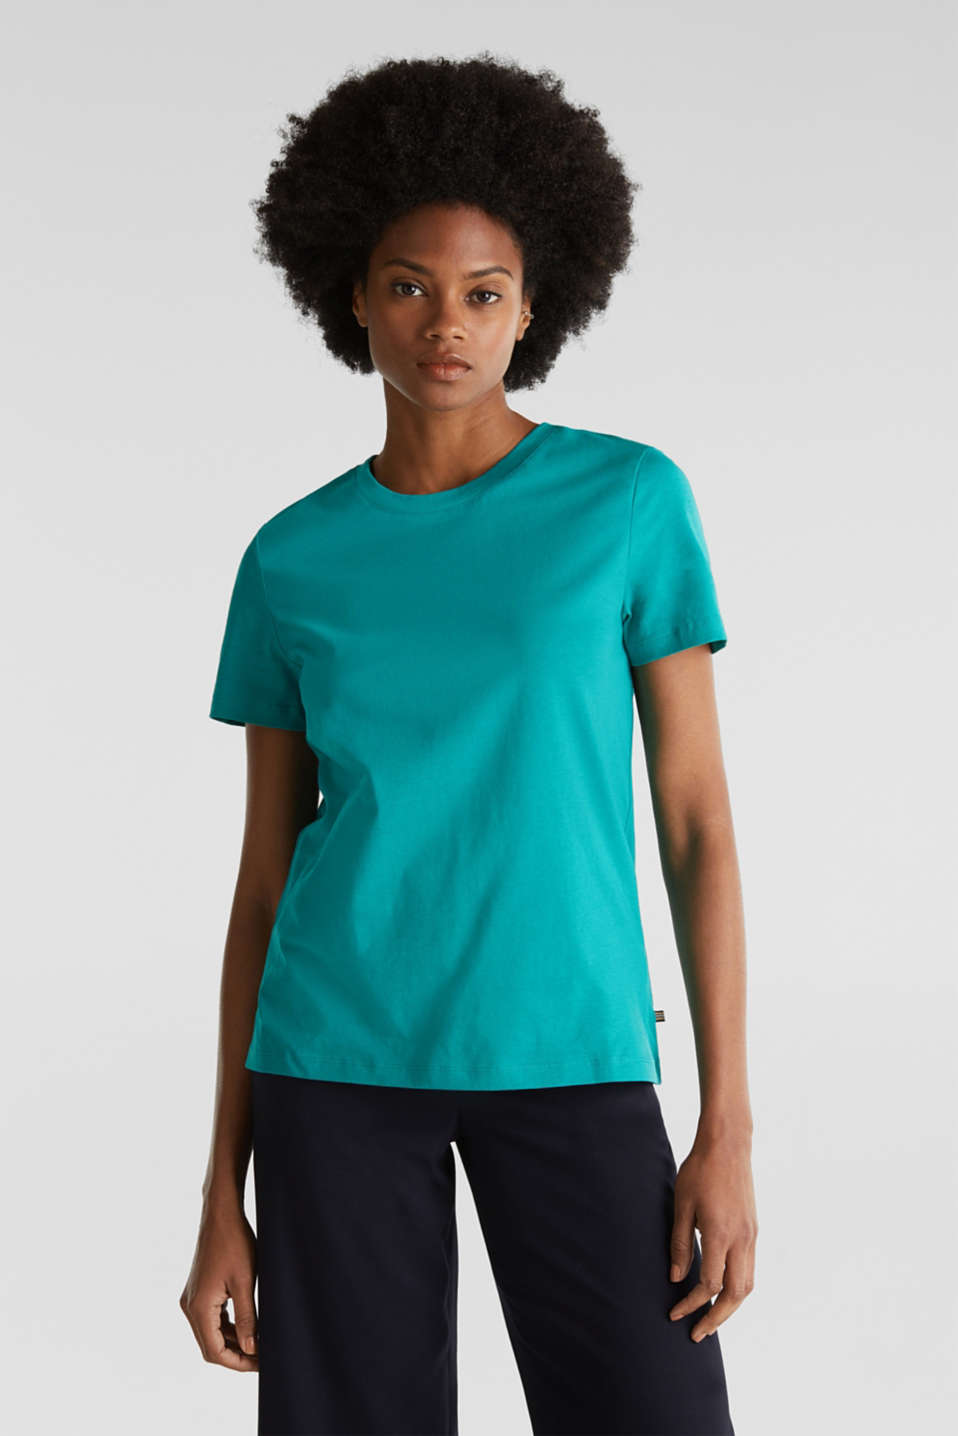 Esprit - T-shirt in basic look, 100% organic cotton